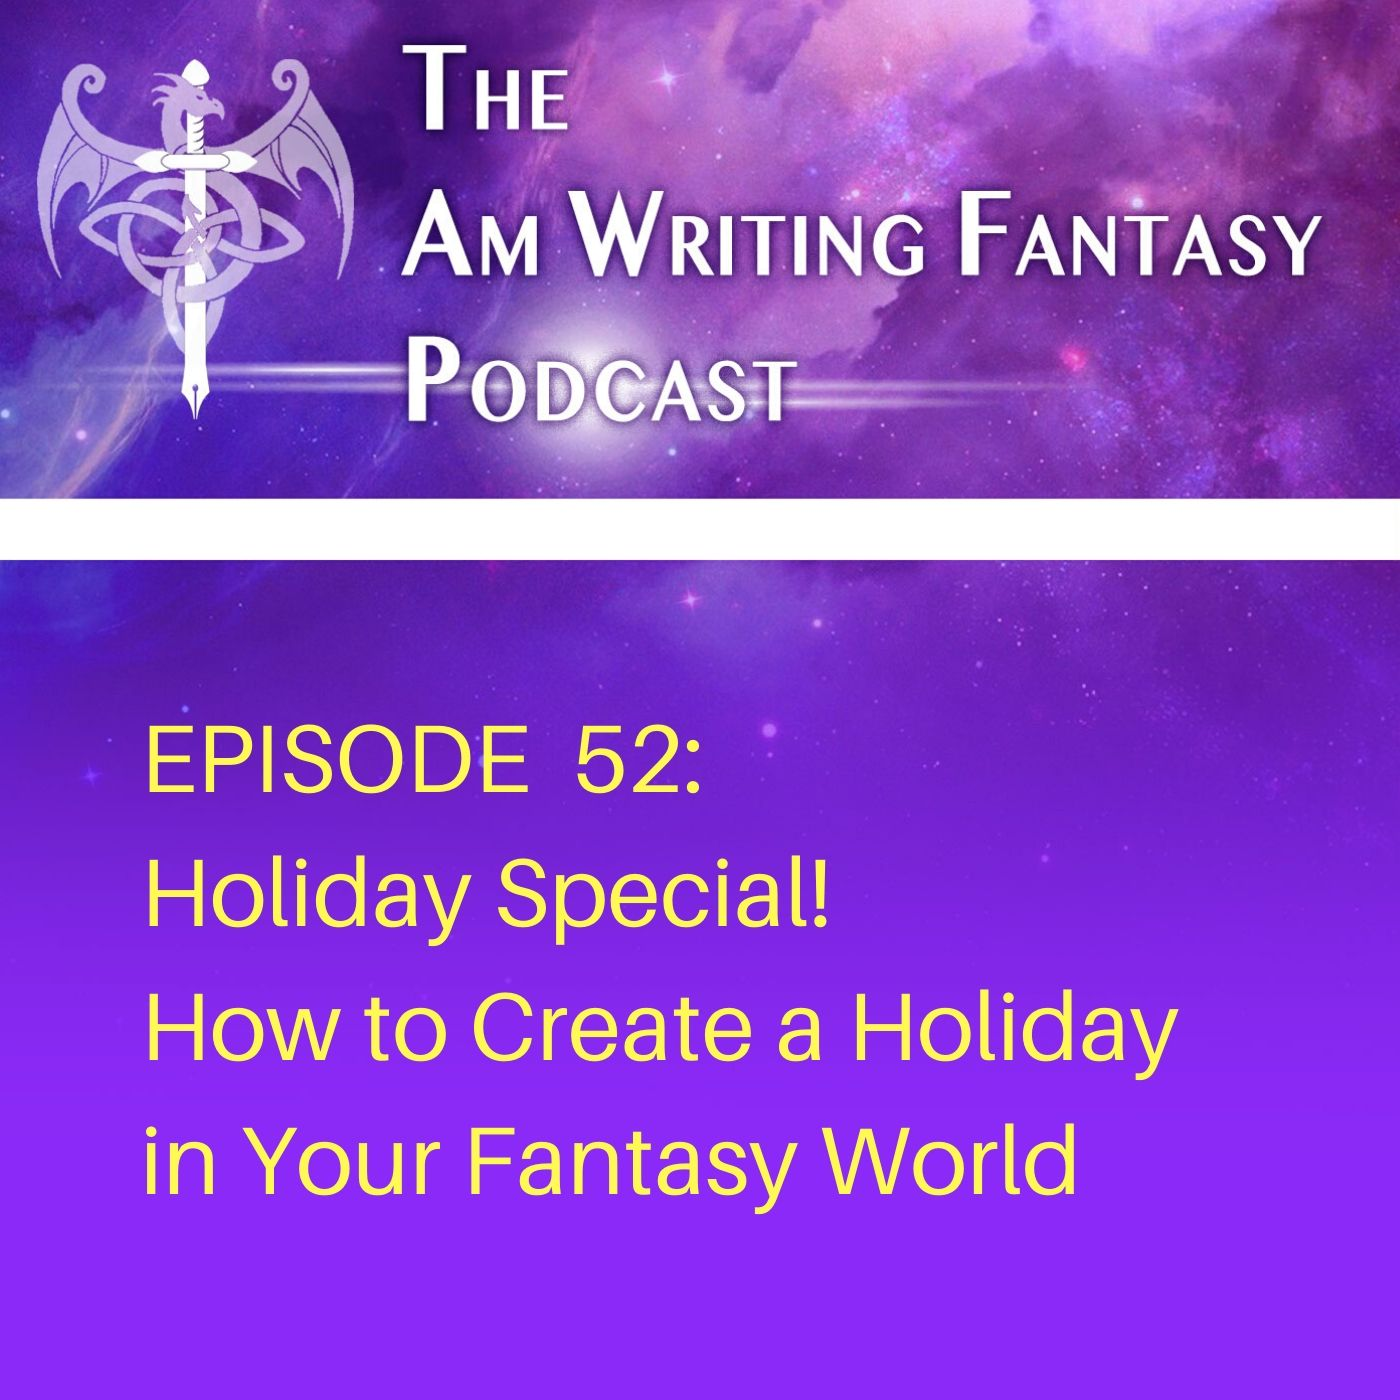 The AmWritingFantasy Podcast: Episode 52 – Holiday Special